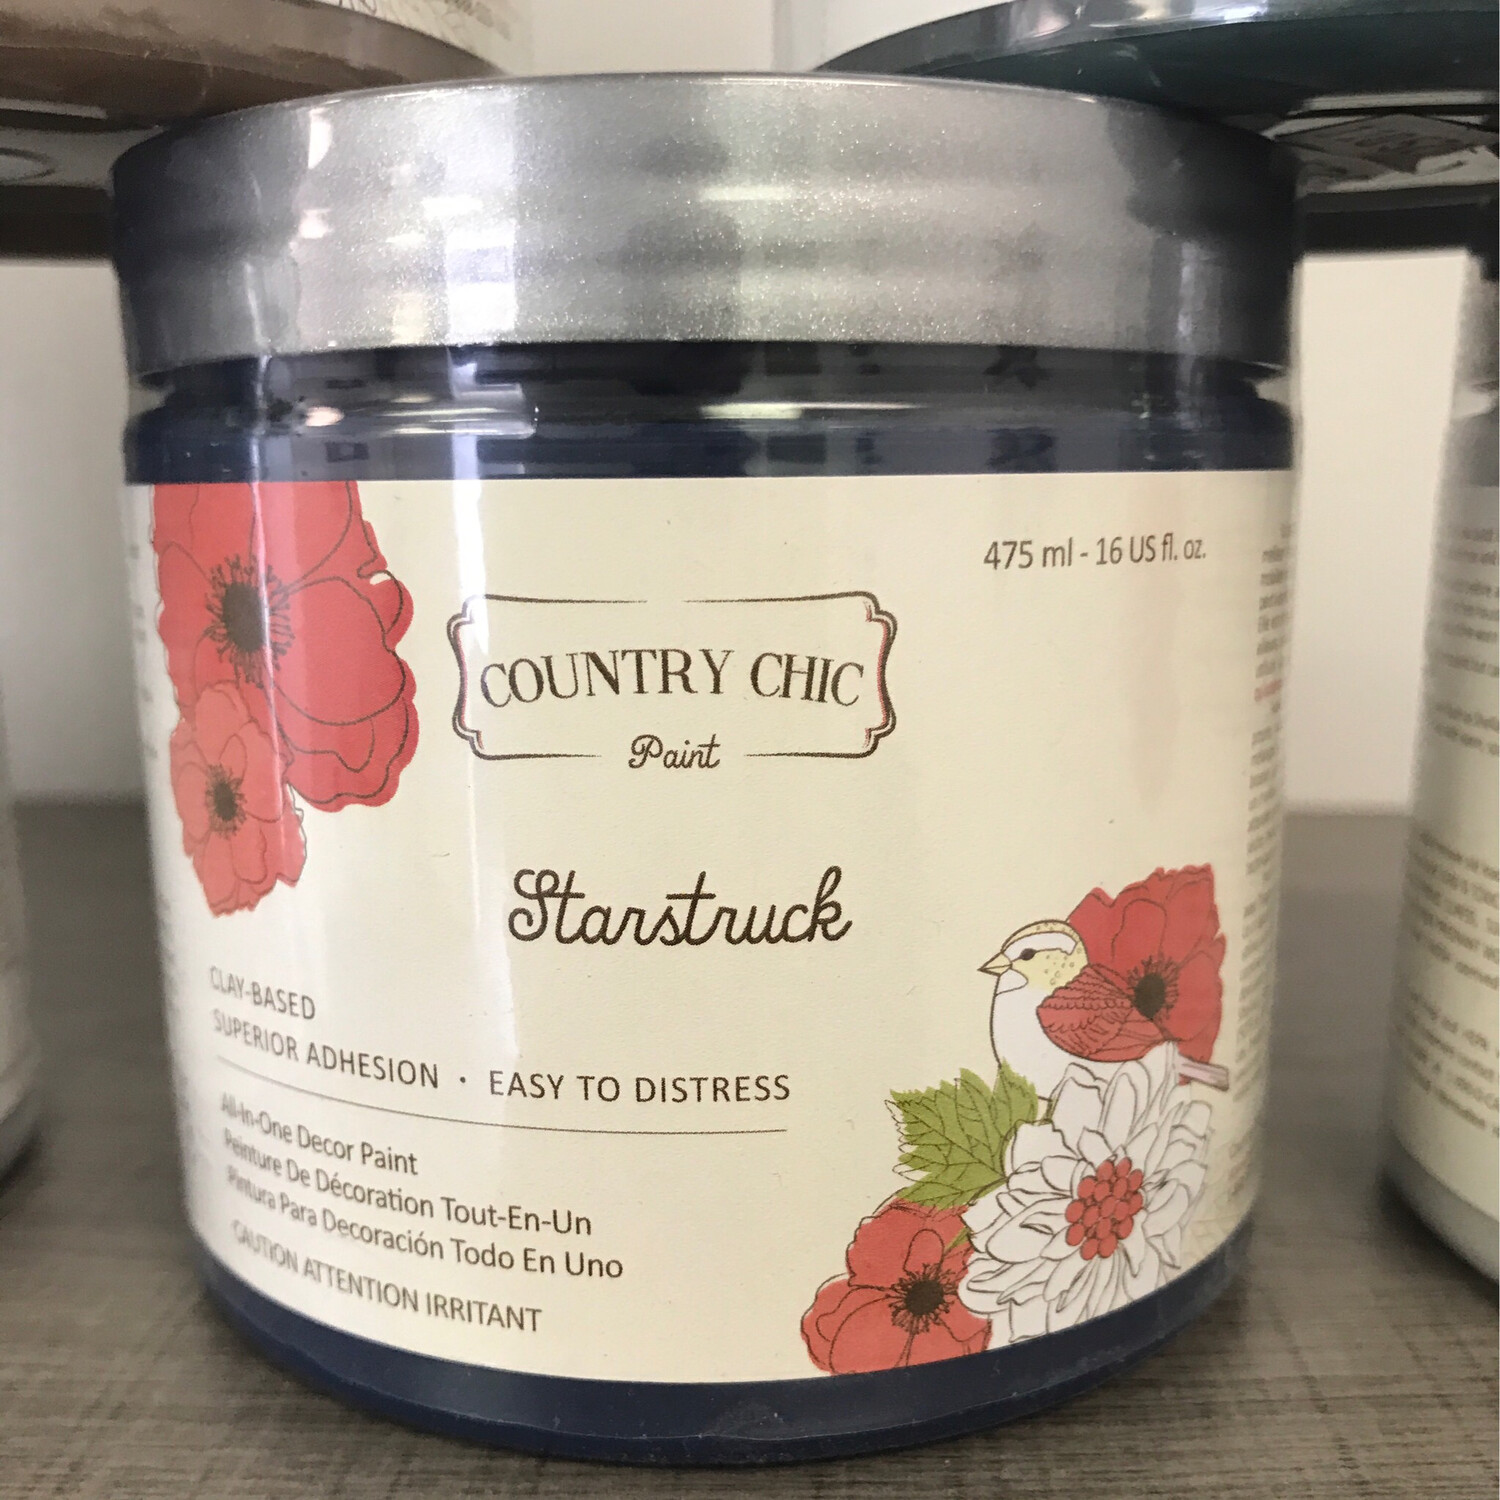 Country Chic Star struck Pint